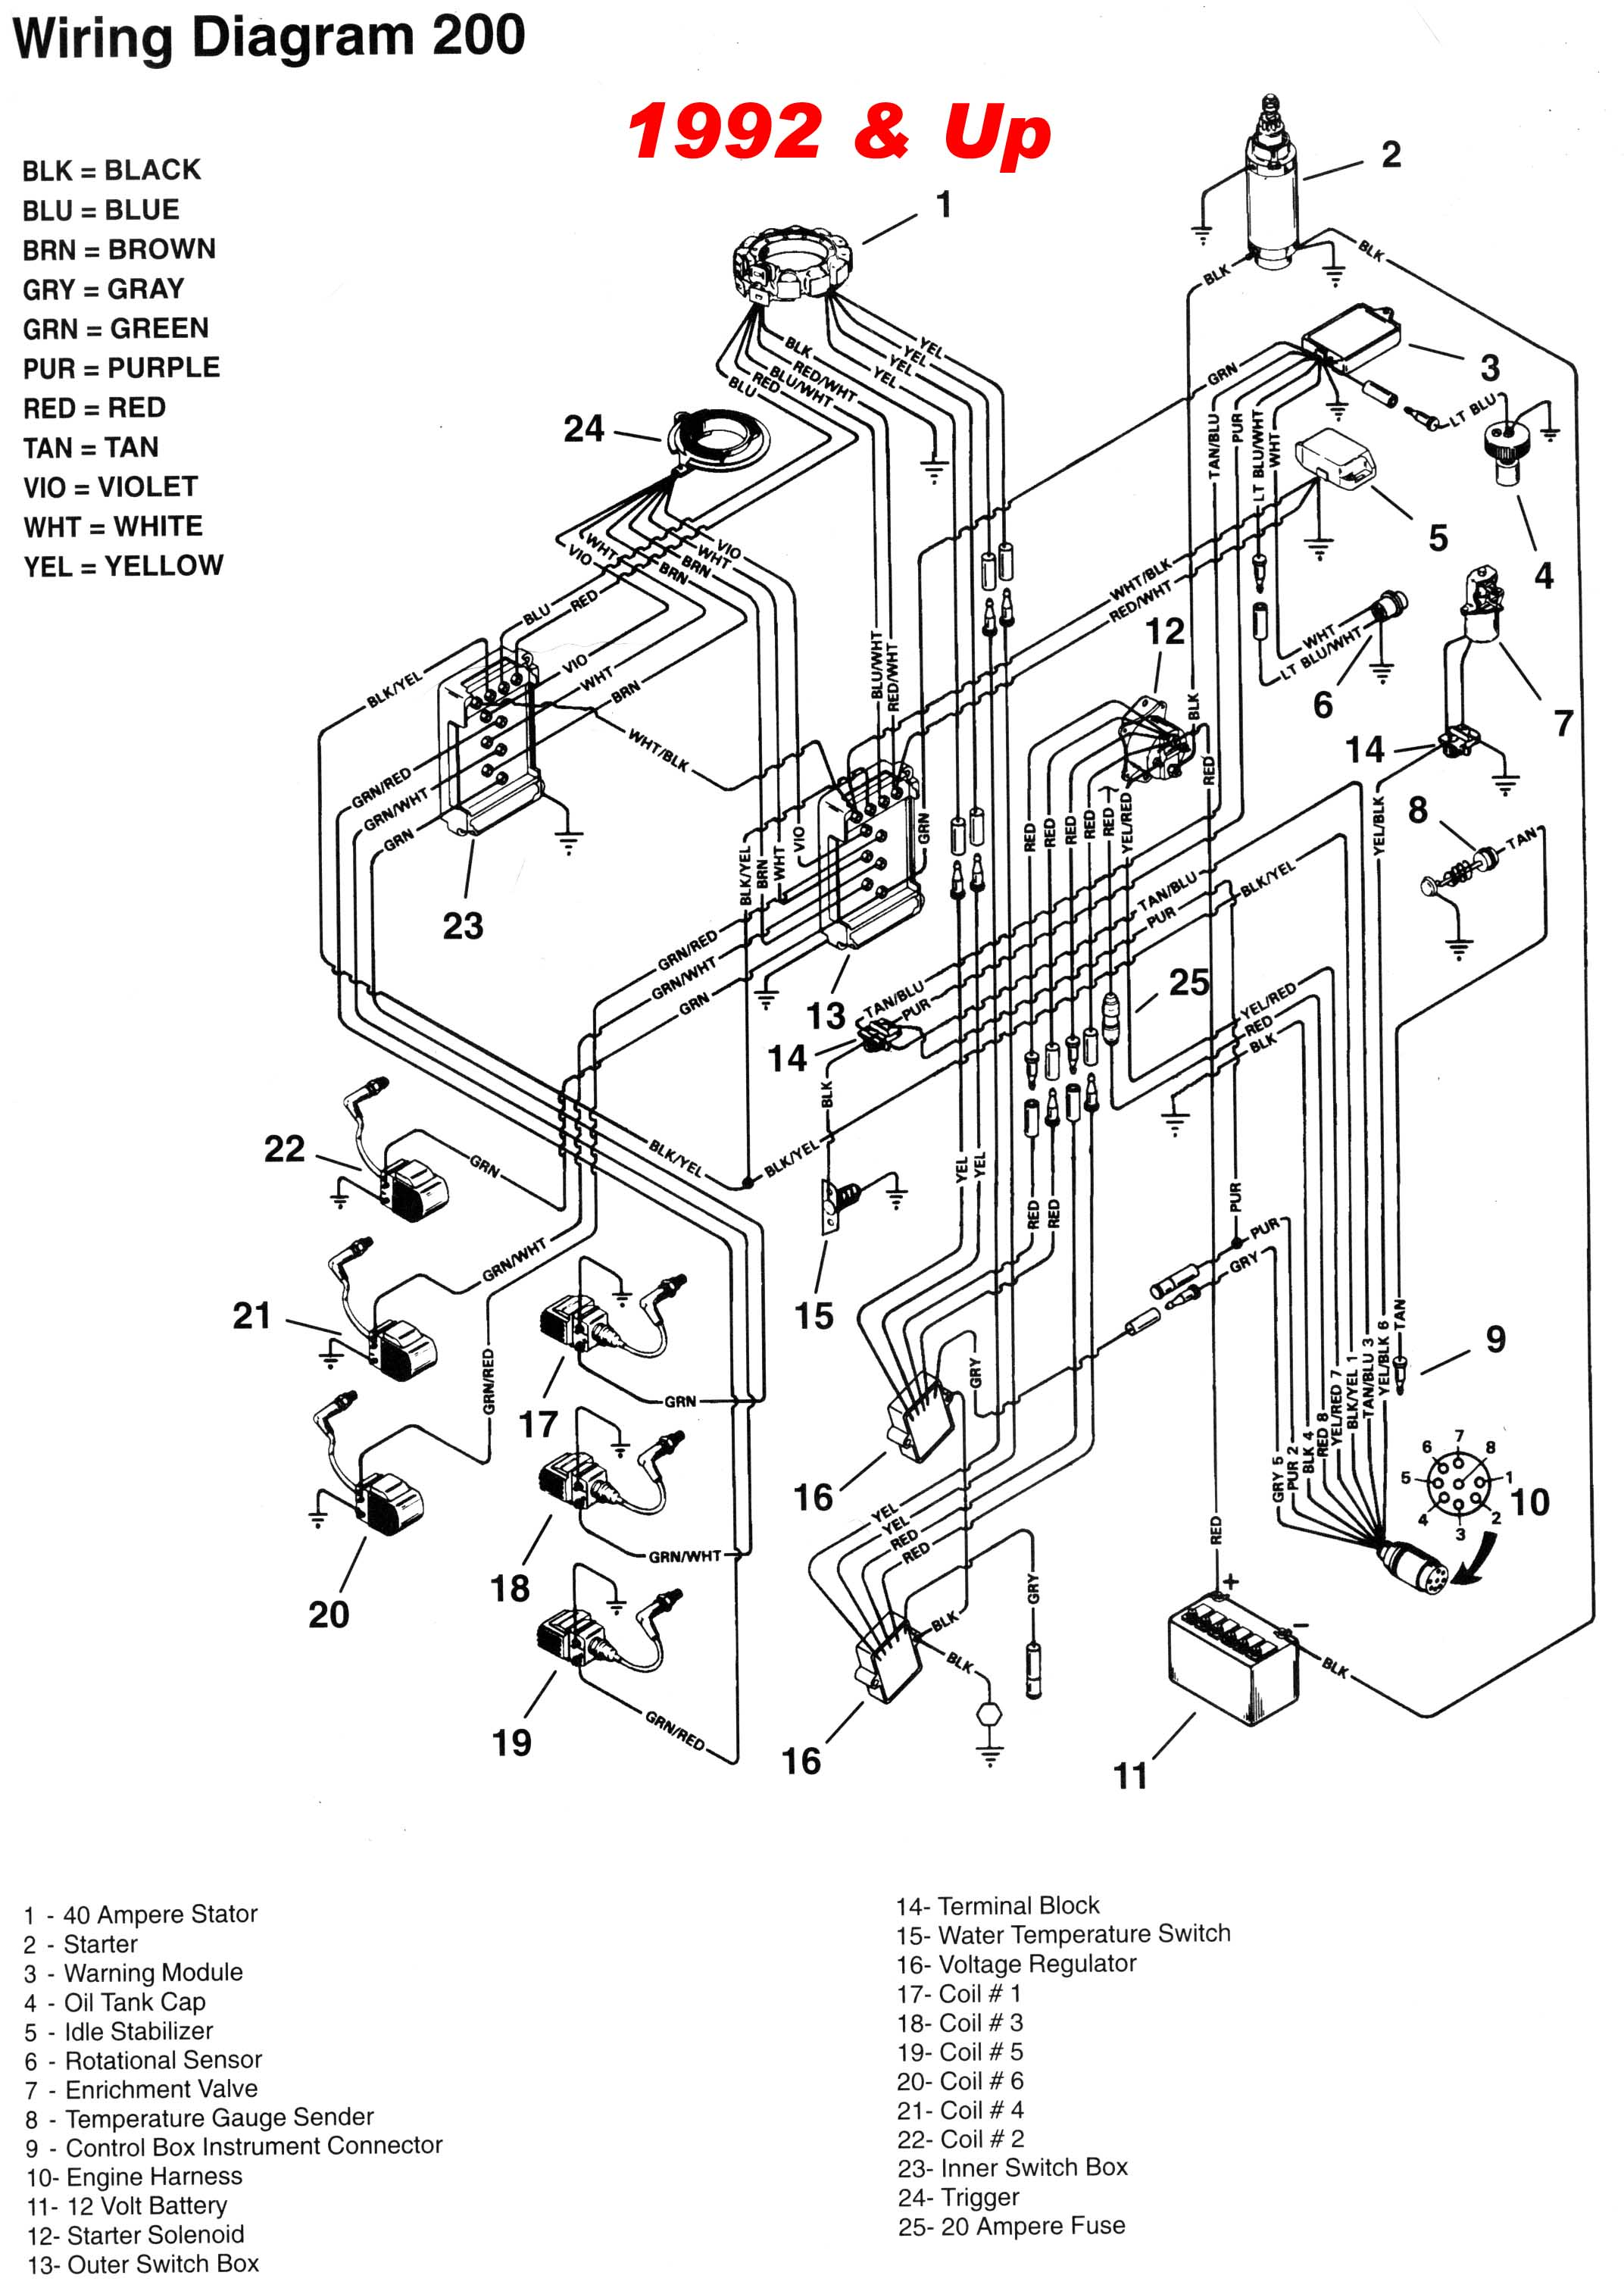 Electrical System, Wiring diagram for 92up fishing motor